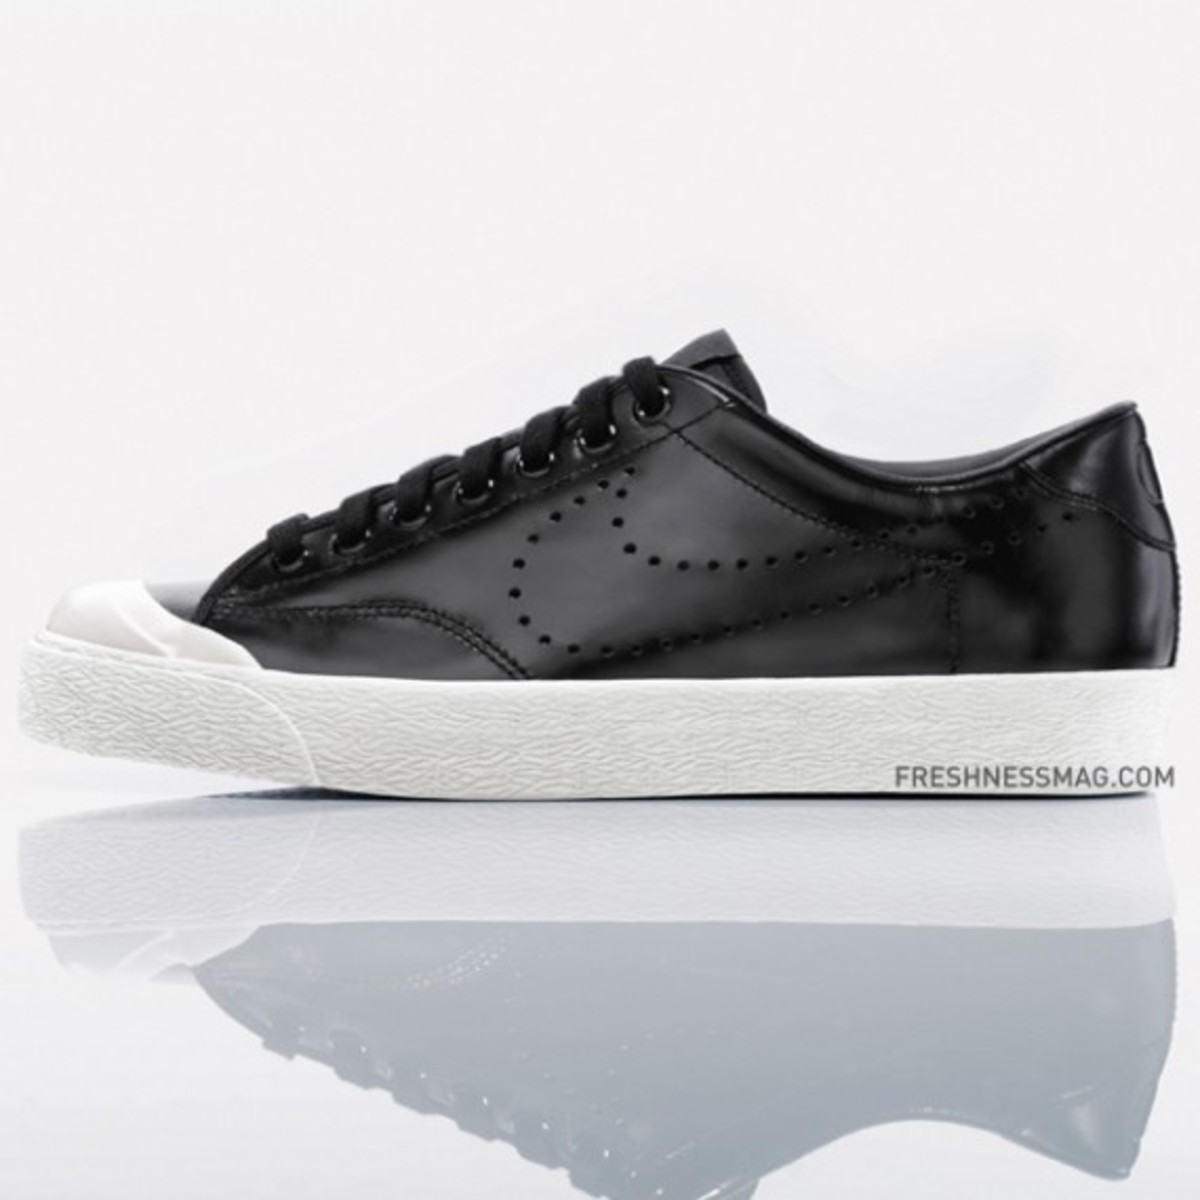 nike-fragment-air-zoom-all-court-premium-ltr-tz-02